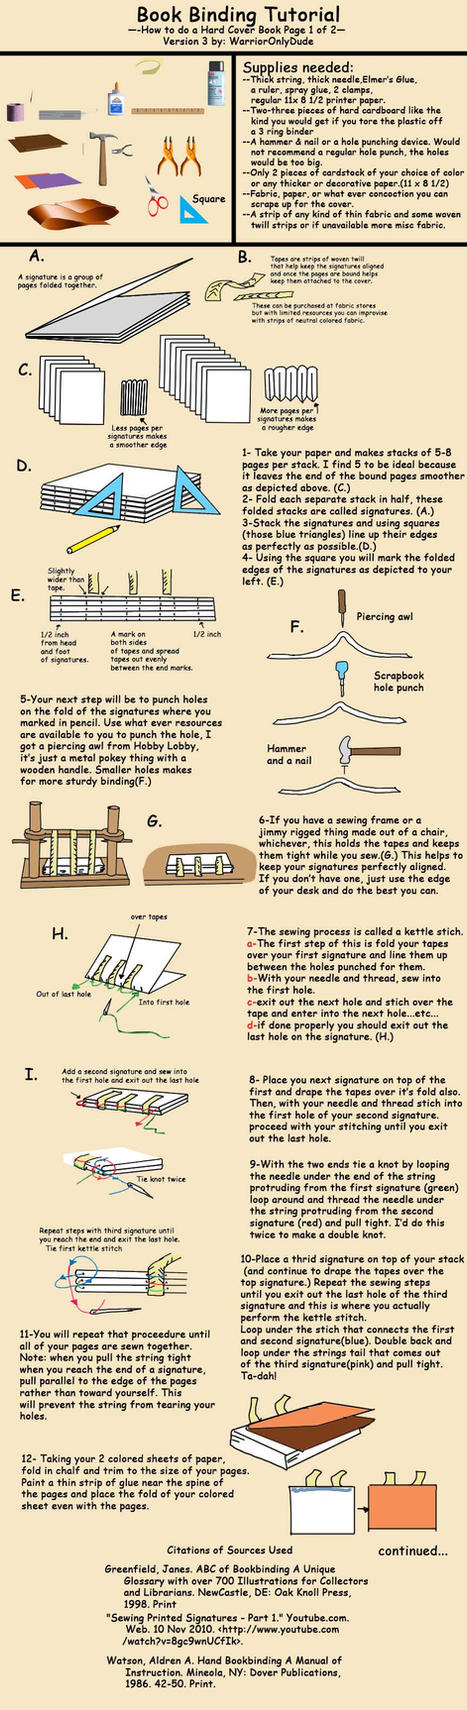 Book Tutorial pg 1 by Swashbookler